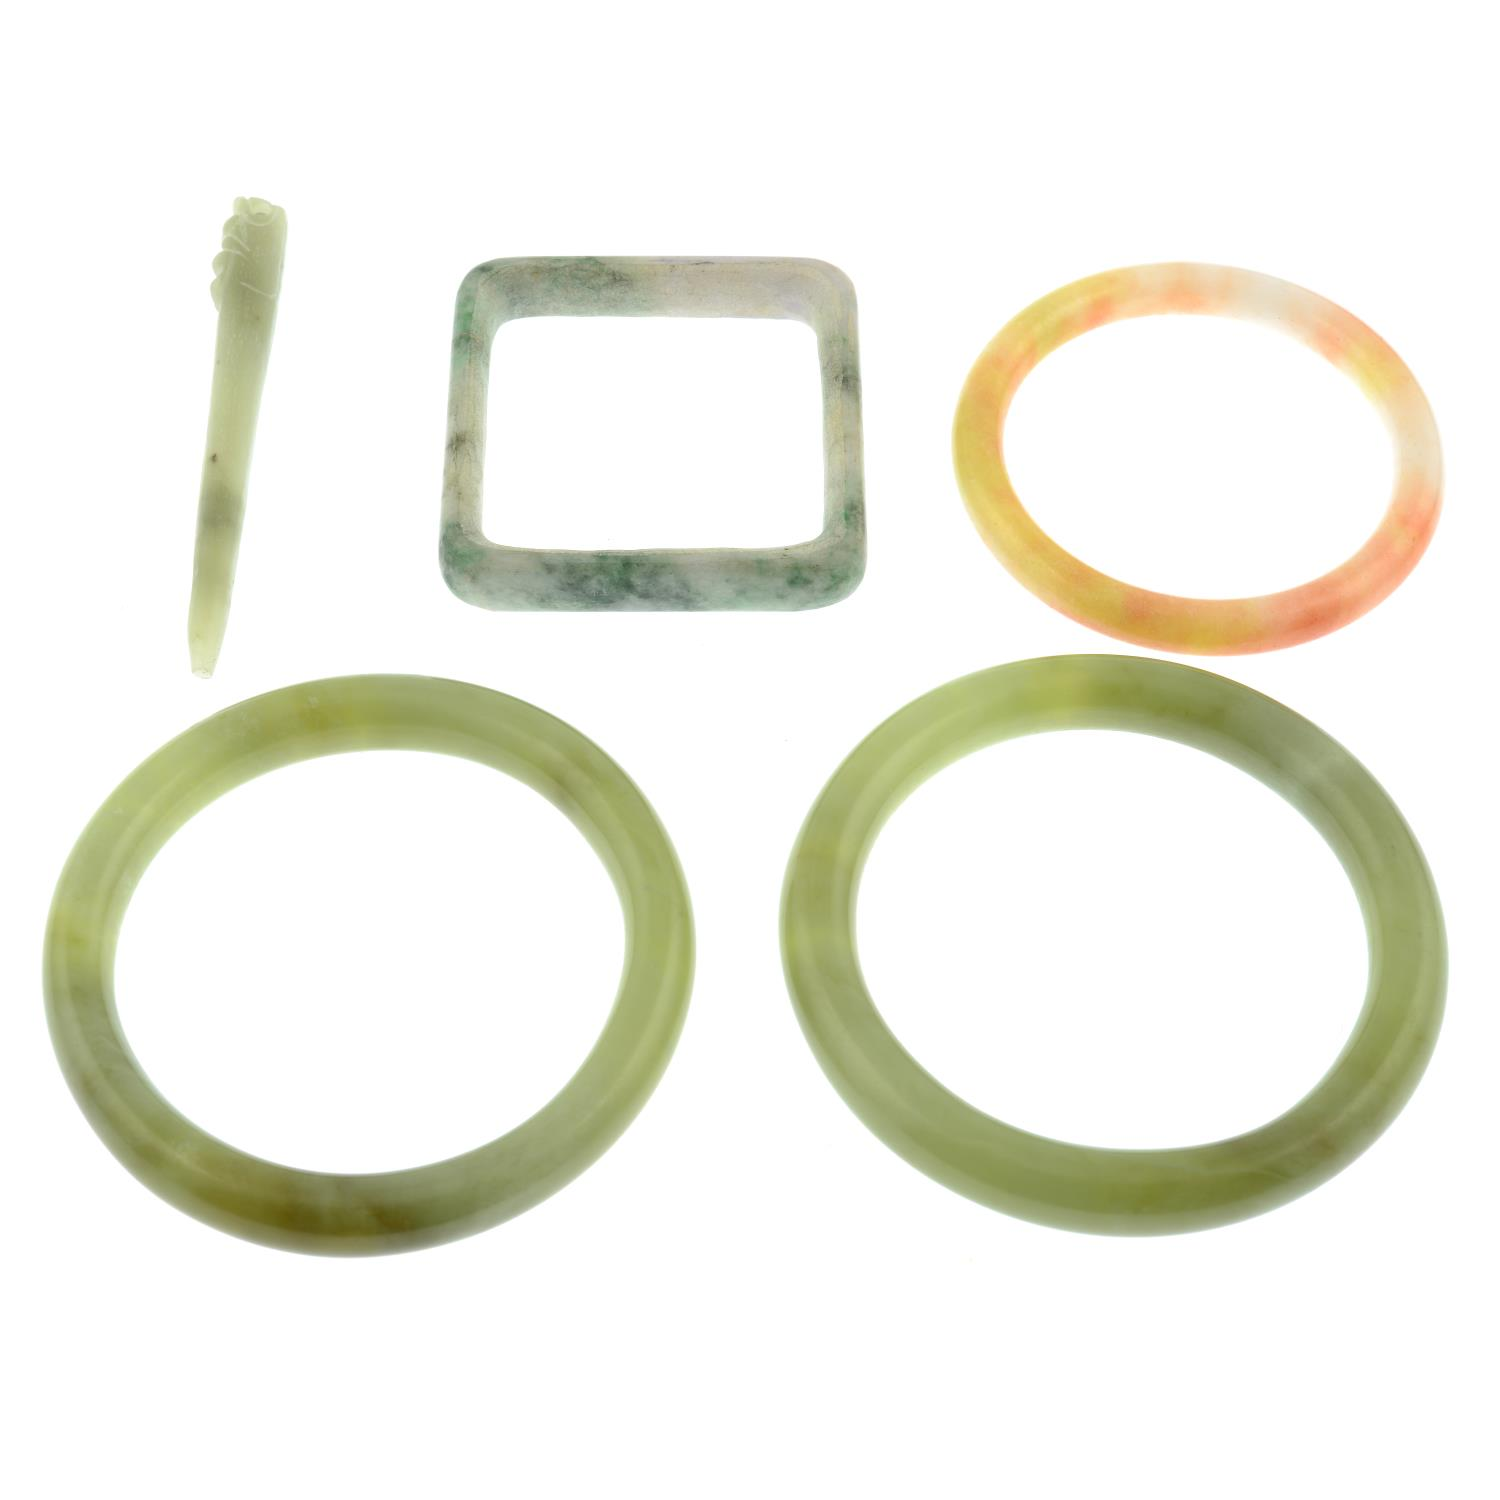 A selection of jade and serpentine jewellery, to include six bangles and a pendant. - Image 2 of 2